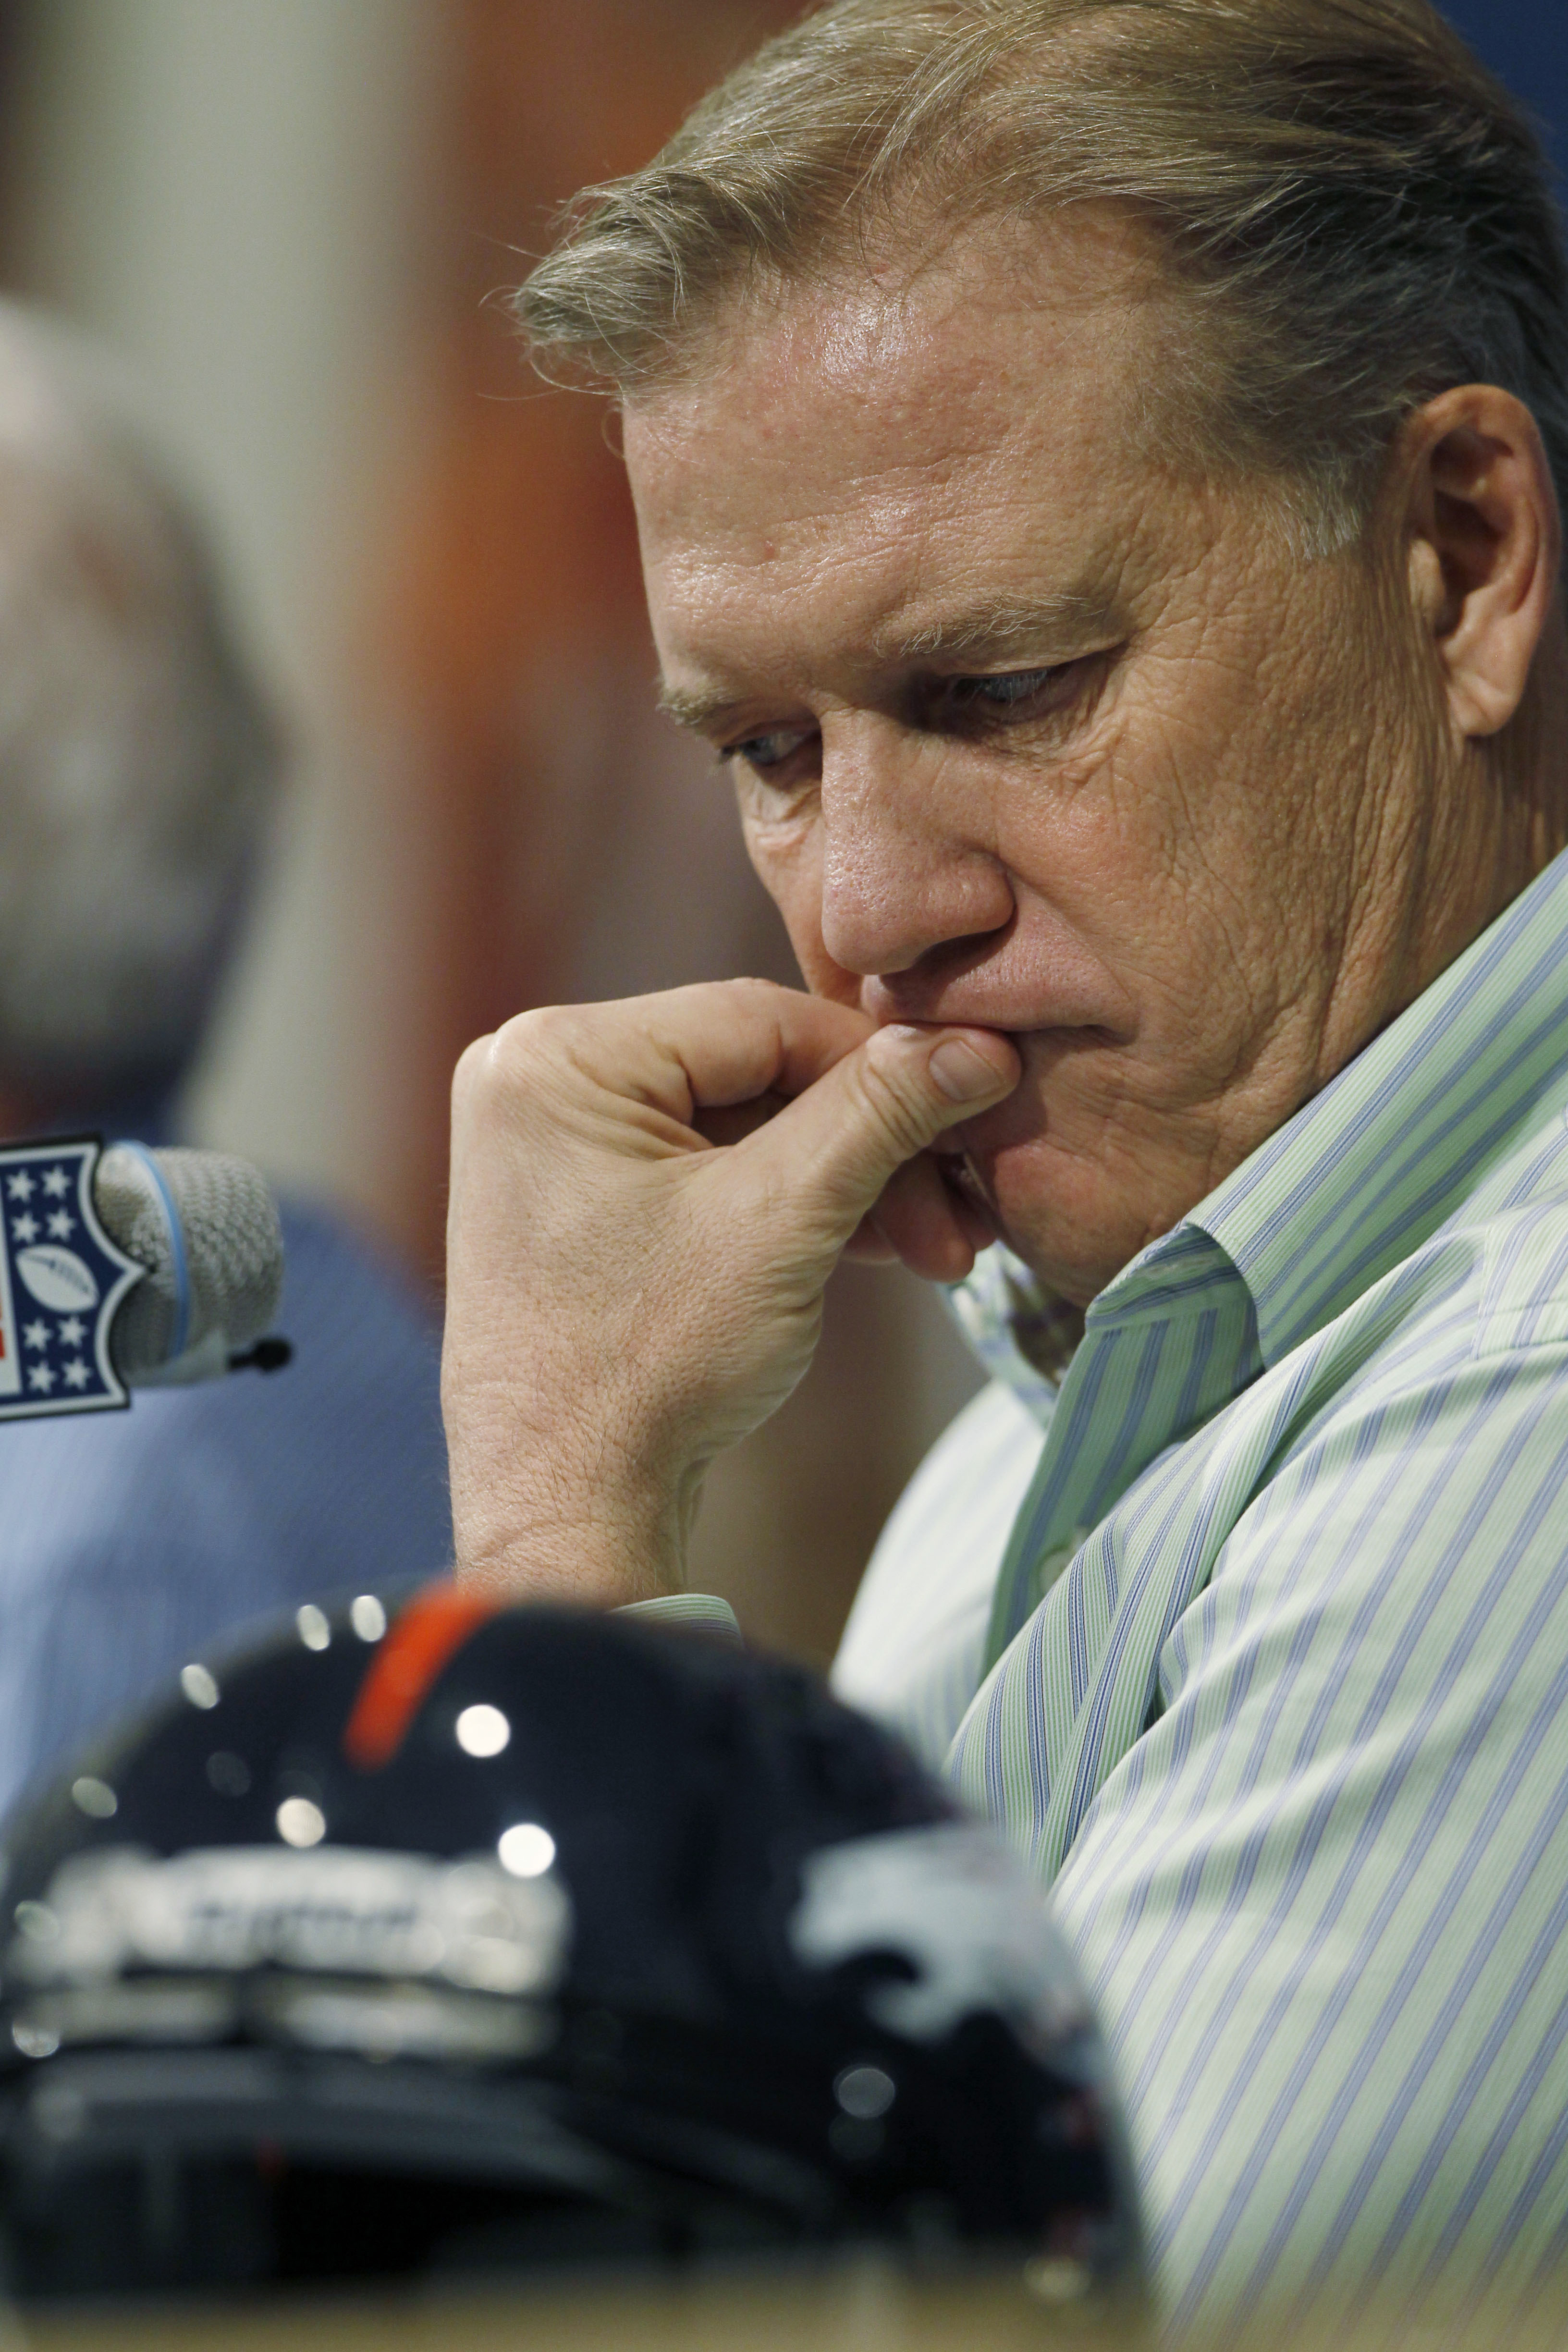 FILE - In this Monday, Jan. 14, 2013, file photo, John Elway, the Denver Broncos executive vice president of football operations, considers a question about his team's AFC Playoff loss to the Baltimore Ravens from reporters during a news conference in the